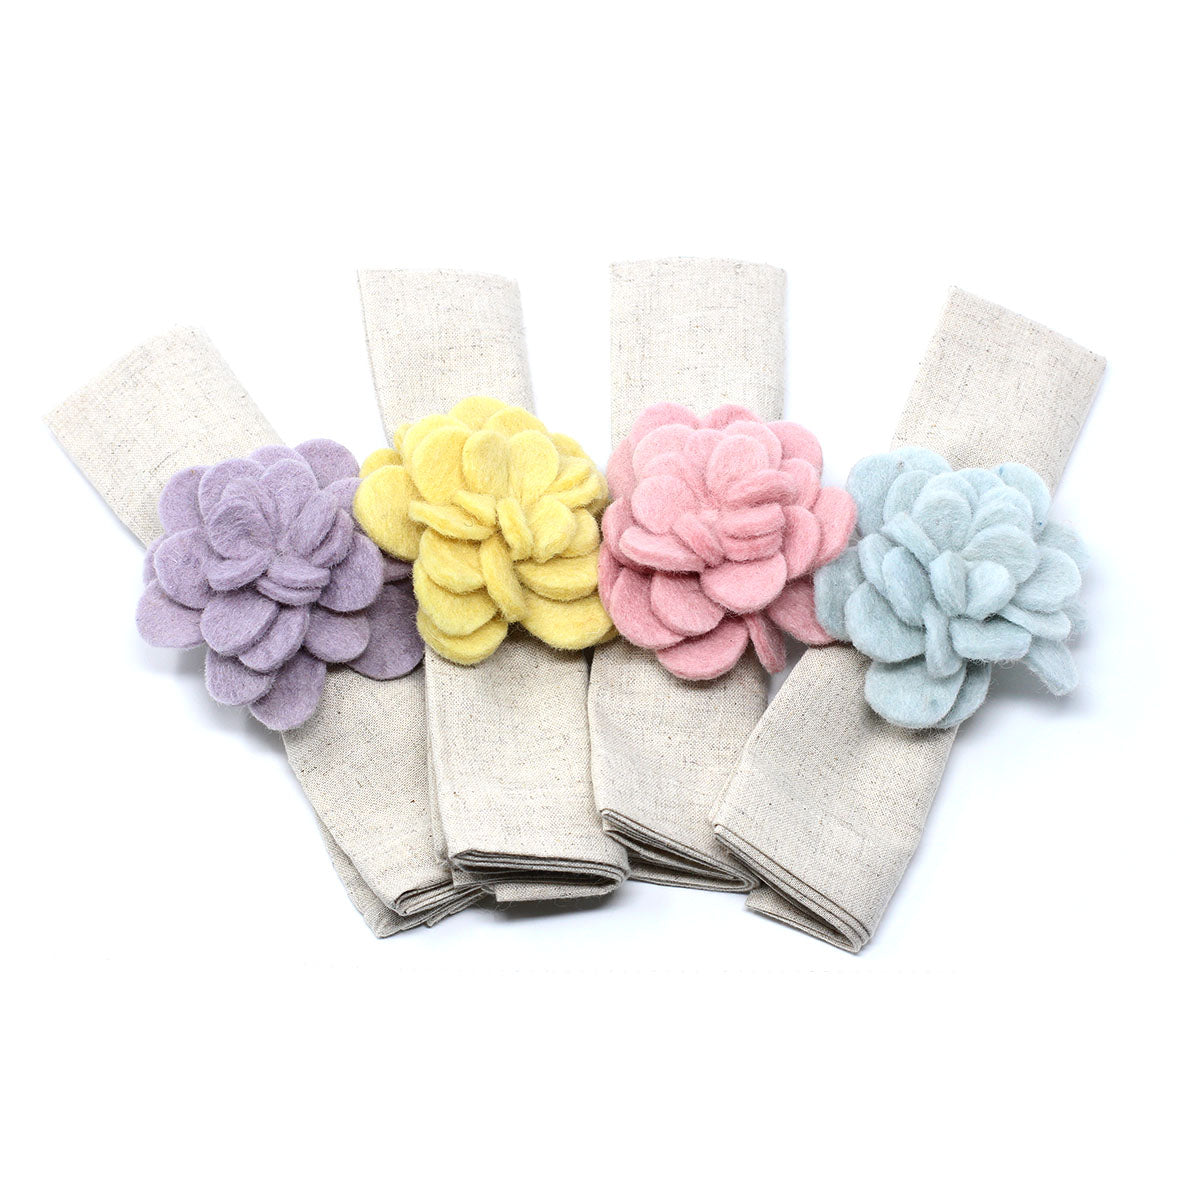 Hand Crafted Felt: Set of 4 Napkin Rings, Assorted Colorful Zinnias